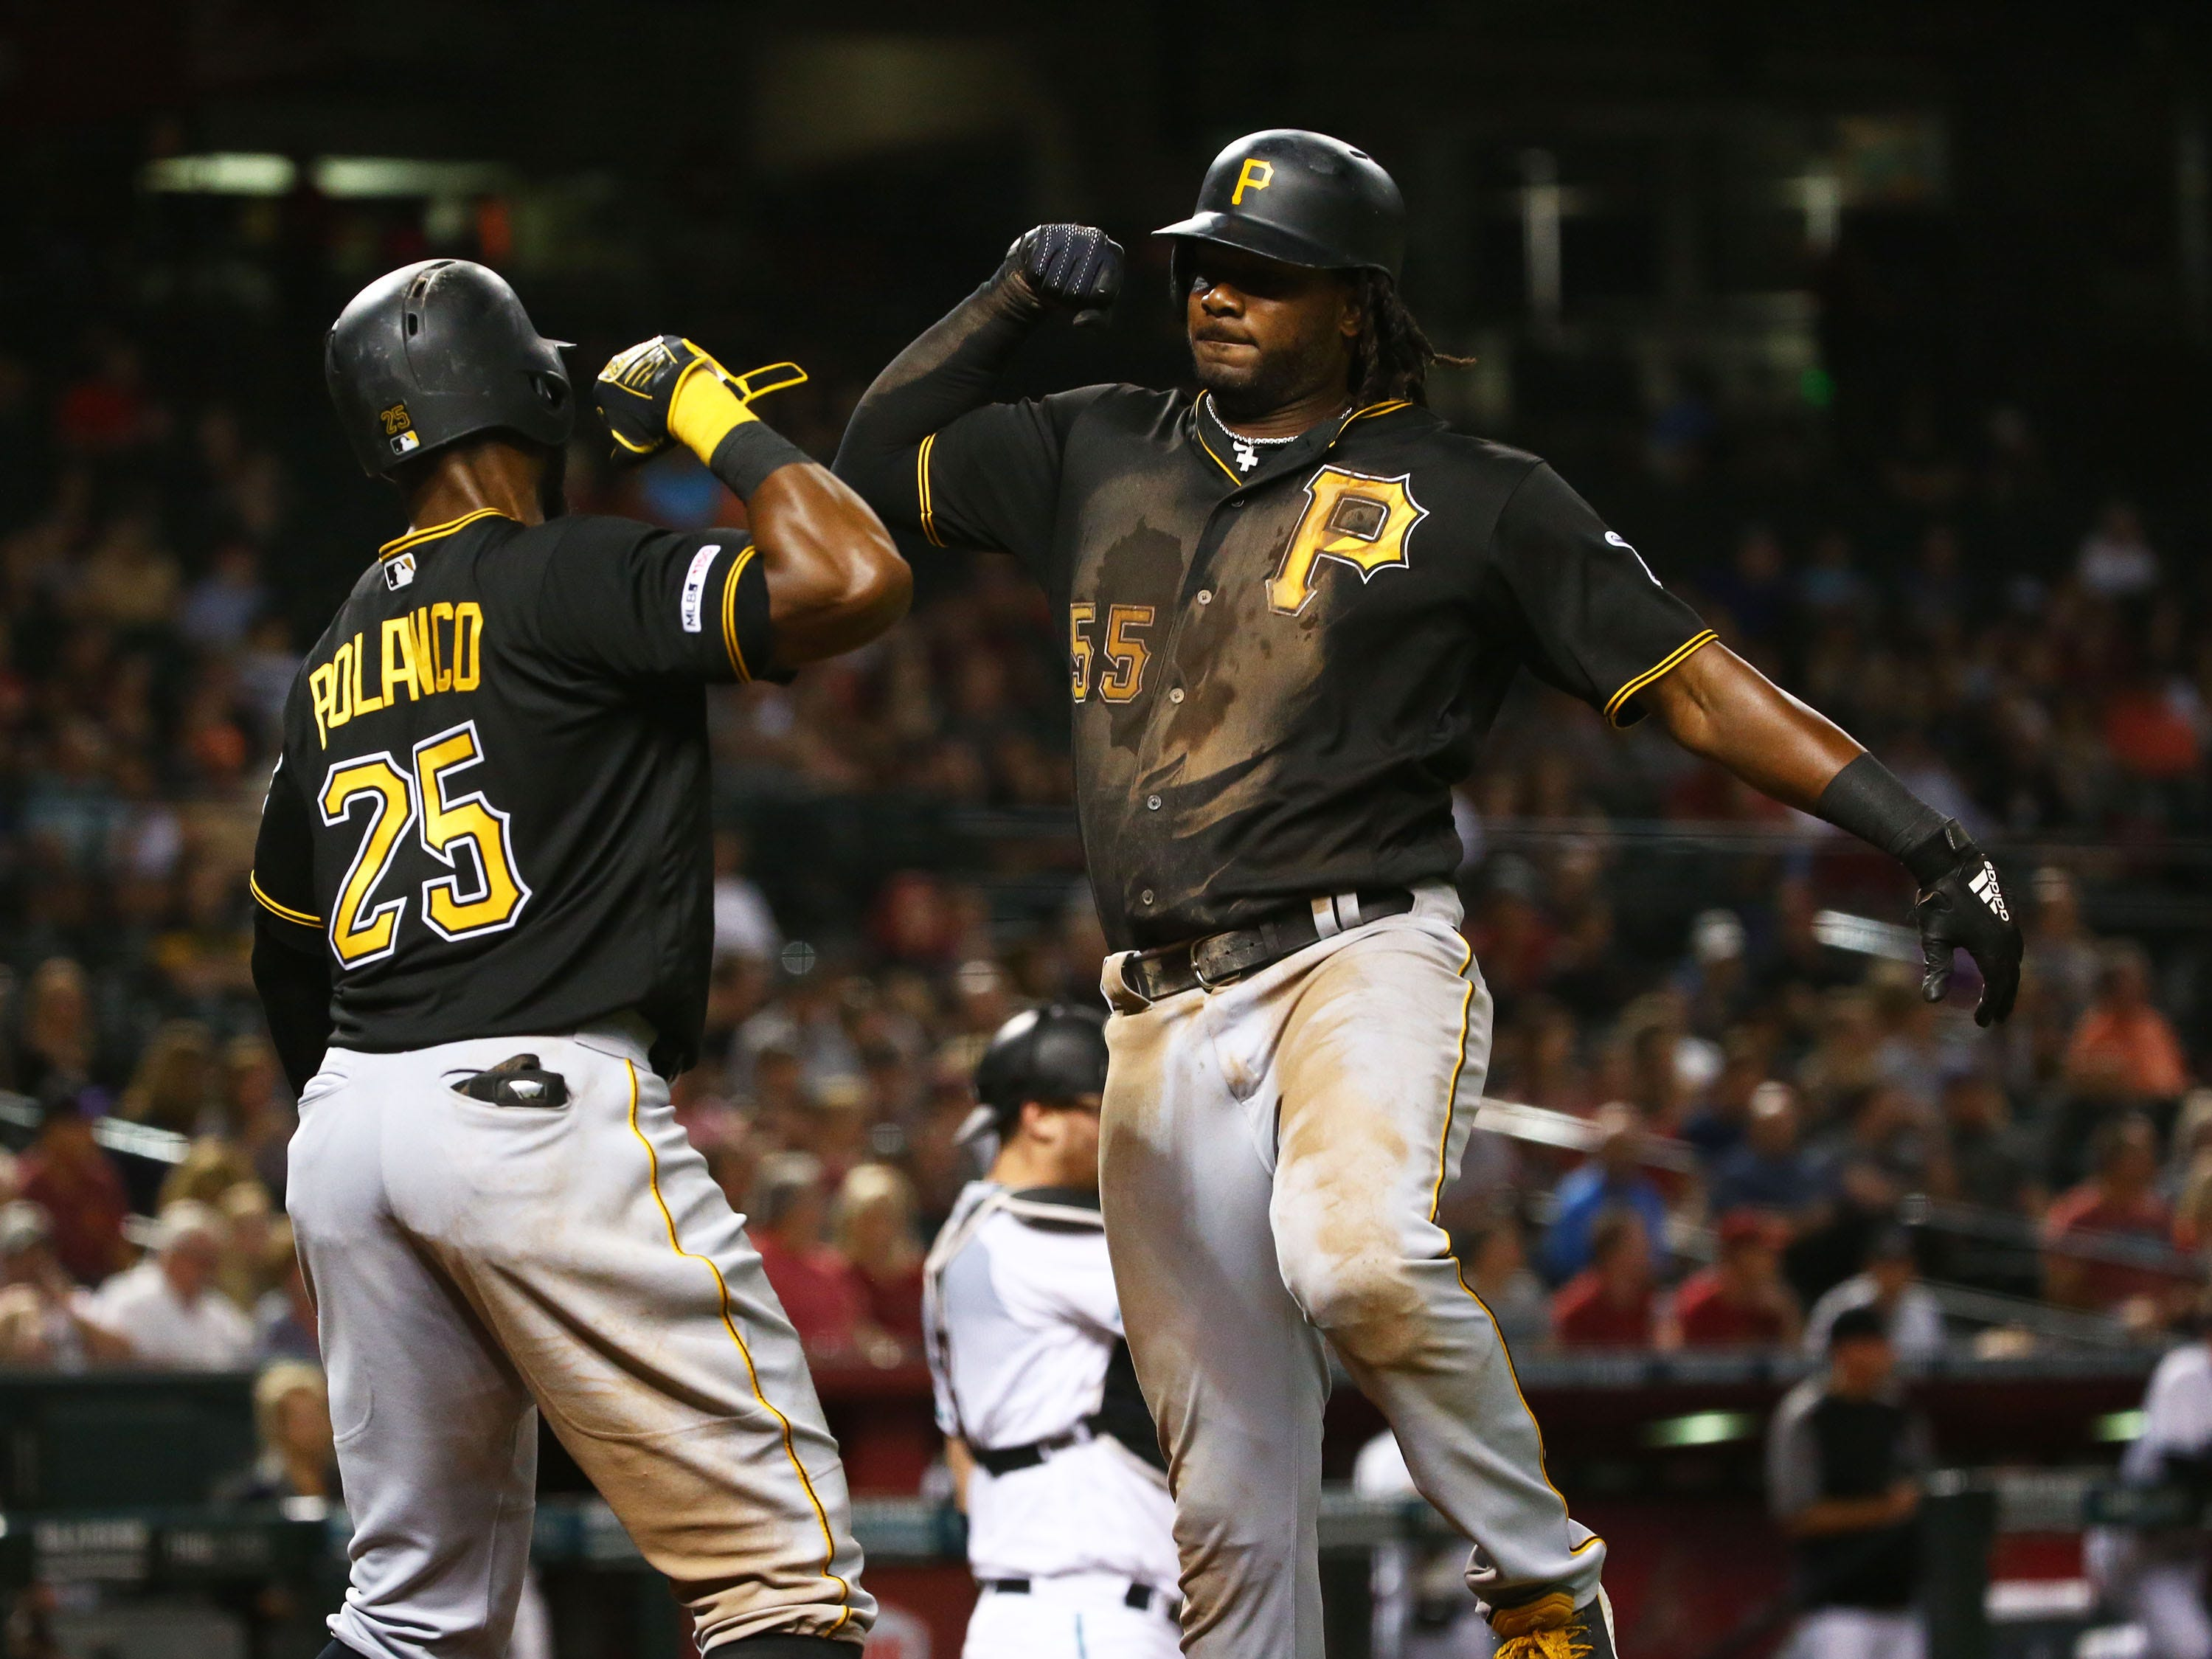 Pittsburgh Pirates Josh Bell (right) reacts after hitting a 2-run home run off Arizona Diamondbacks pitcher Luke Weaver in the fifth inning on May. 14, 2019 at Chase Field in Phoenix, Ariz.